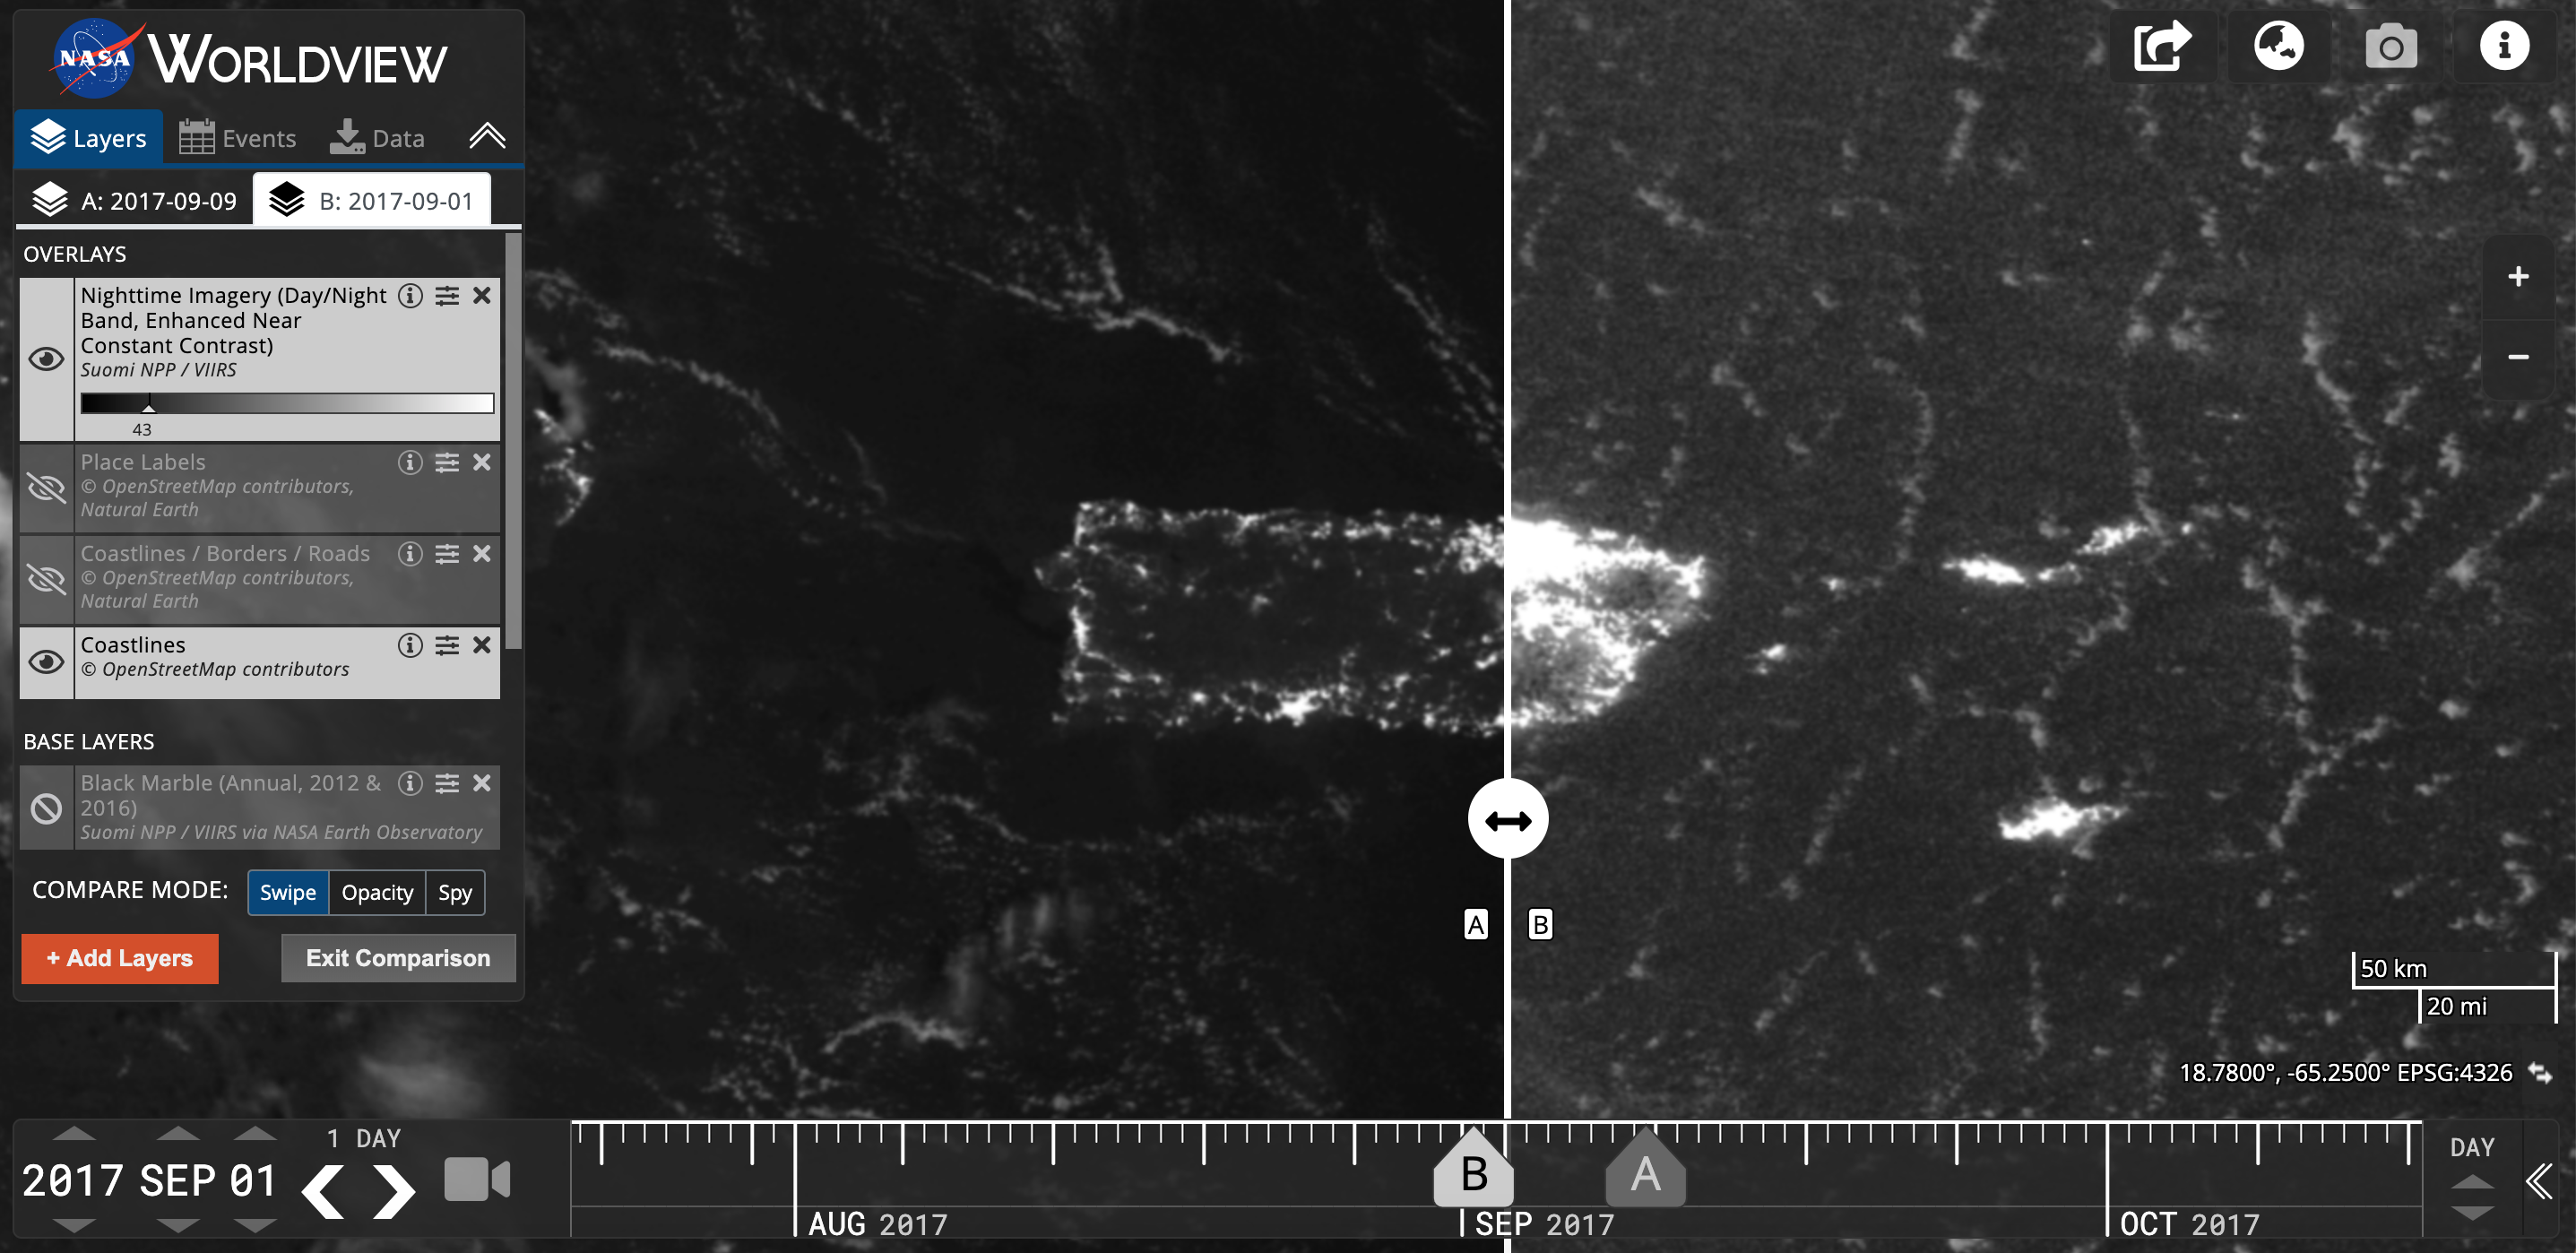 Worldview data visualization of the nighttime lights in Puerto Rico pre- and post- Hurricane Maria, which made landfall on September 20, 2017. Post-hurricane image shows widespread outages around San Juan, including key hospital and transportation infrastructure.